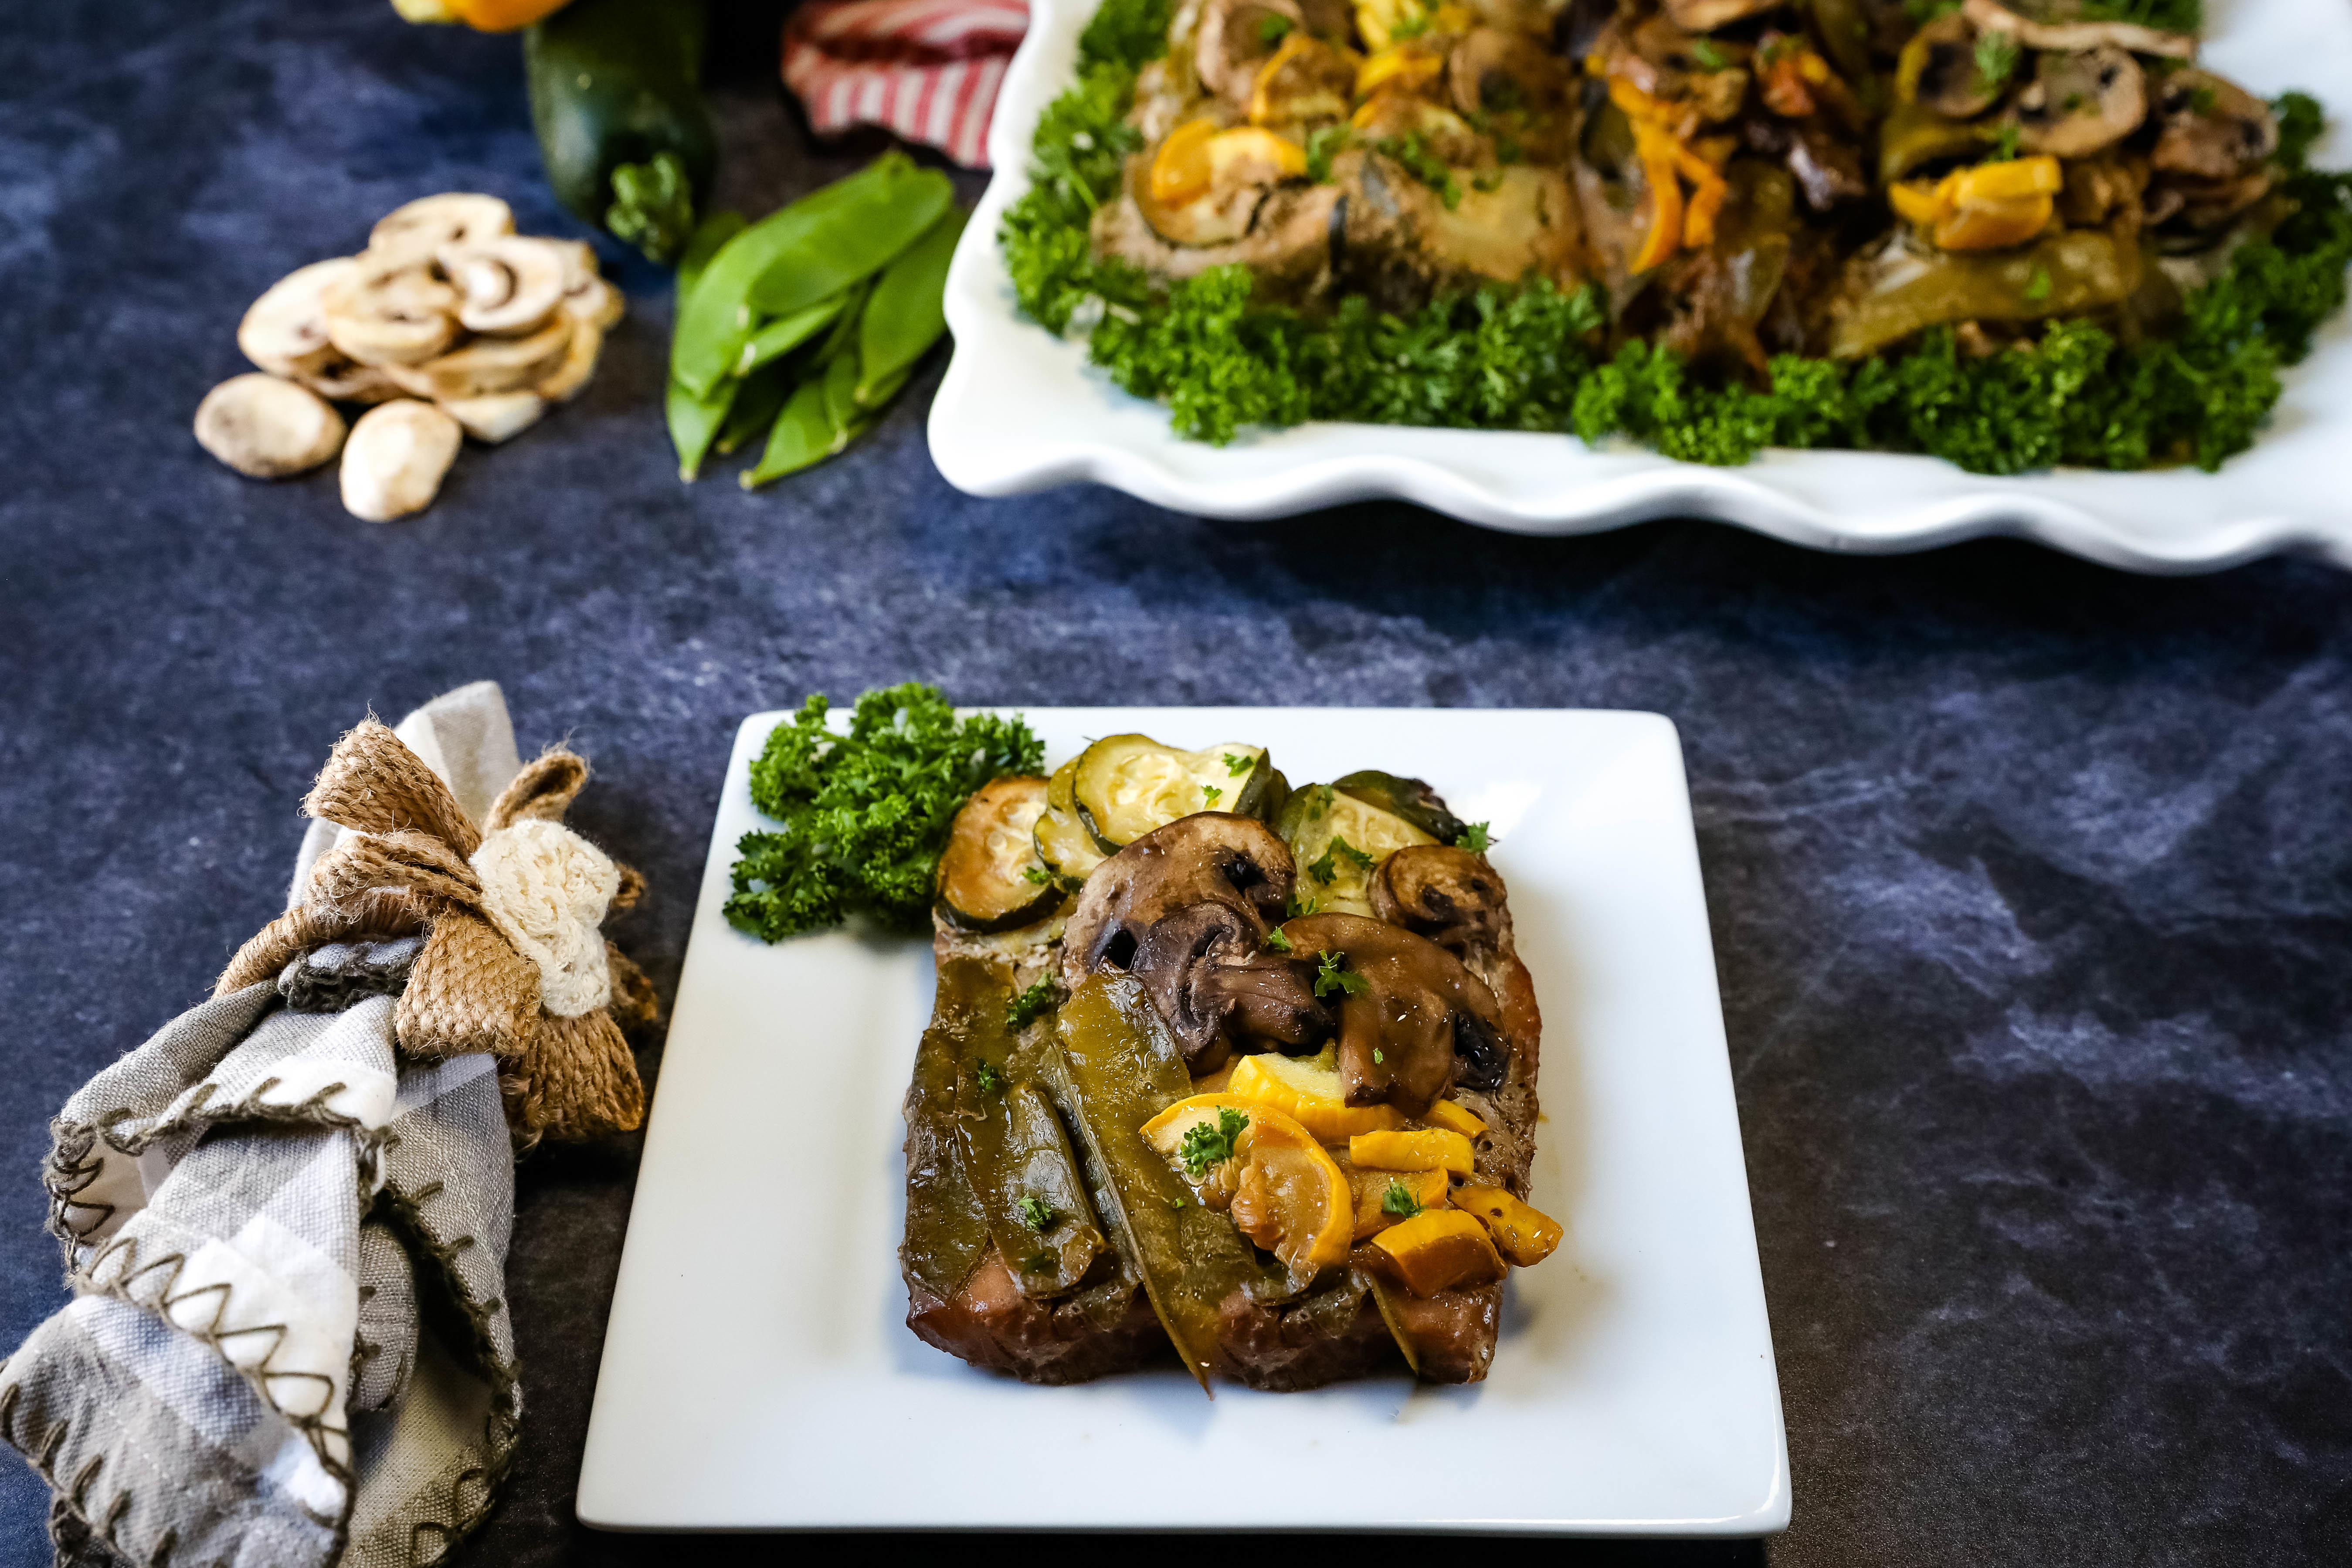 Summer Grillin' Vegetable & Fish Bundles Recipe